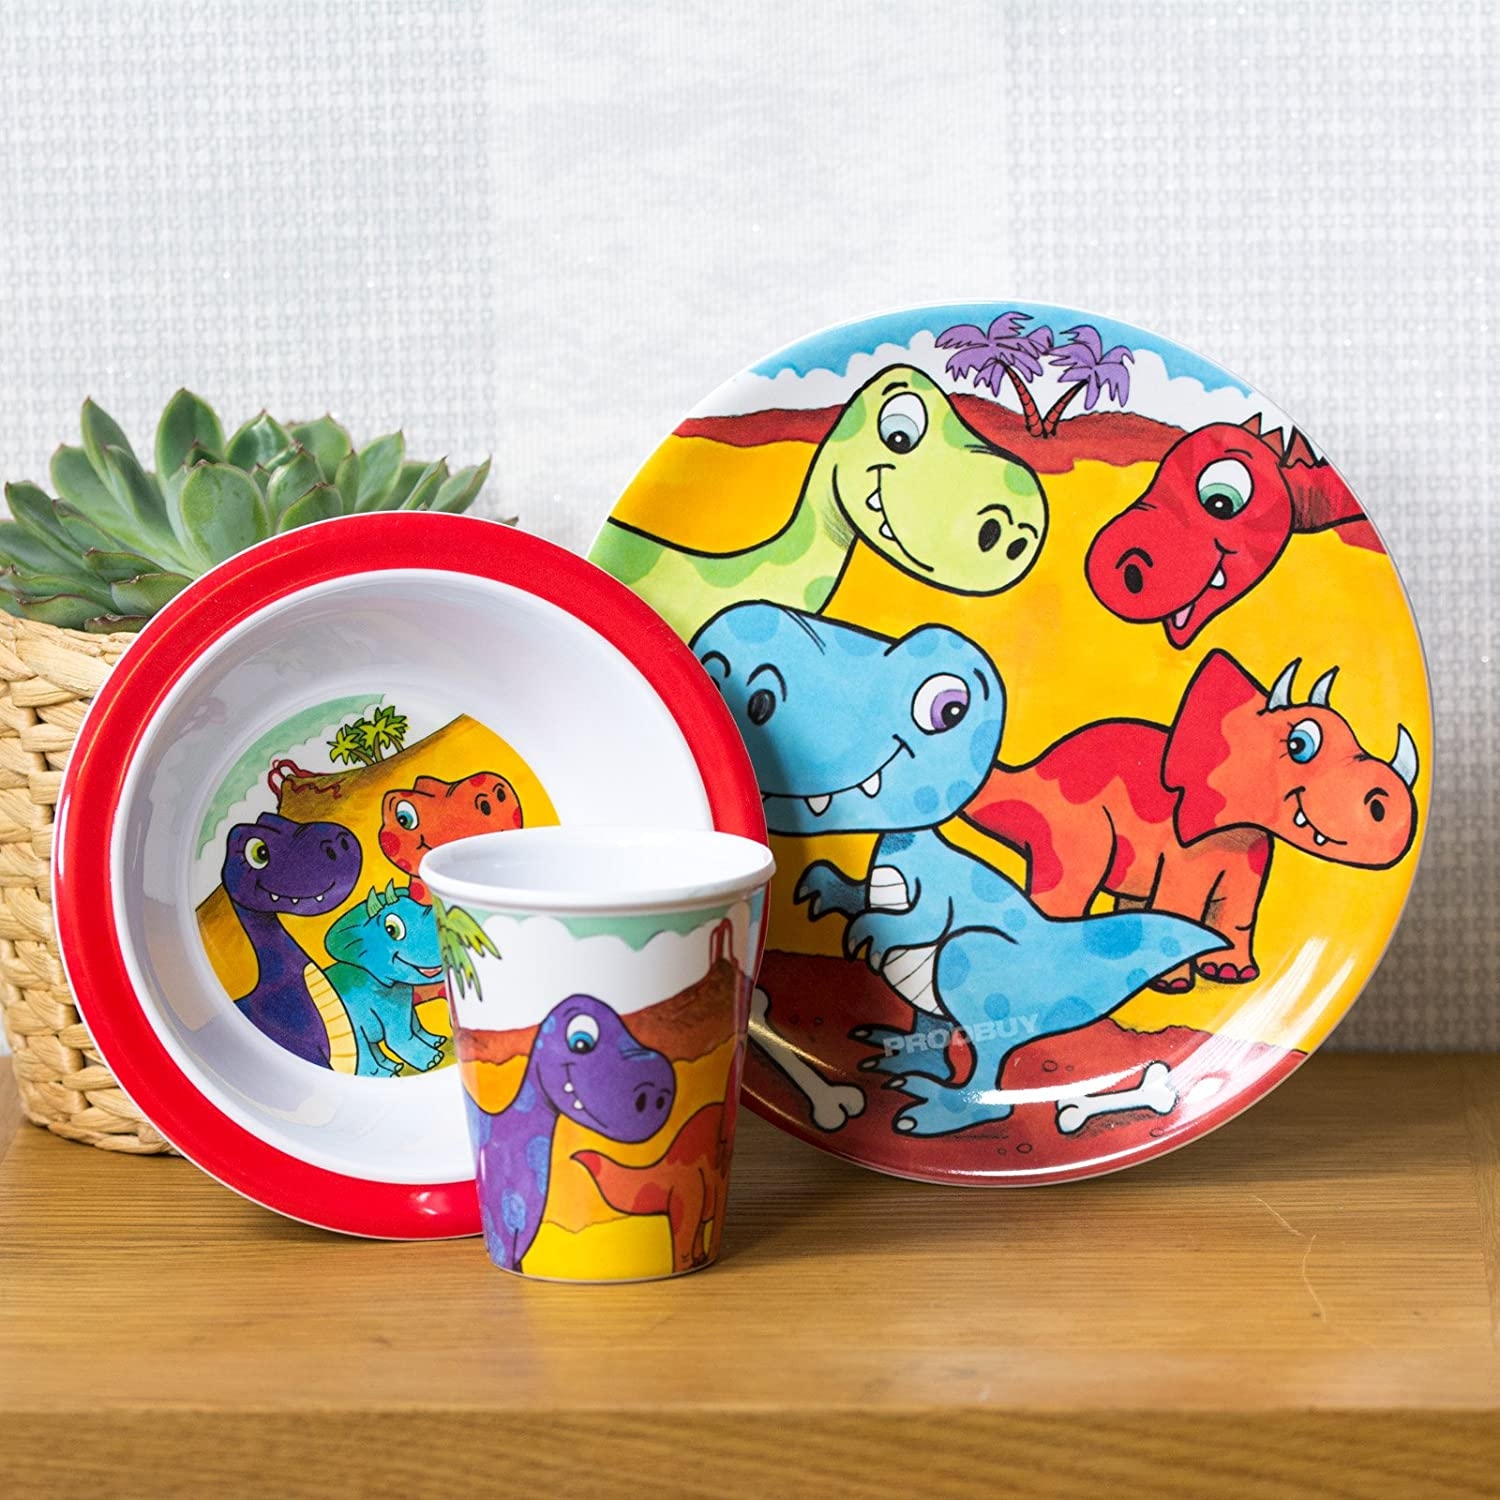 3 Piece Childrens Melamine Dinner Set - Dinosaurs ProdBuy Limited